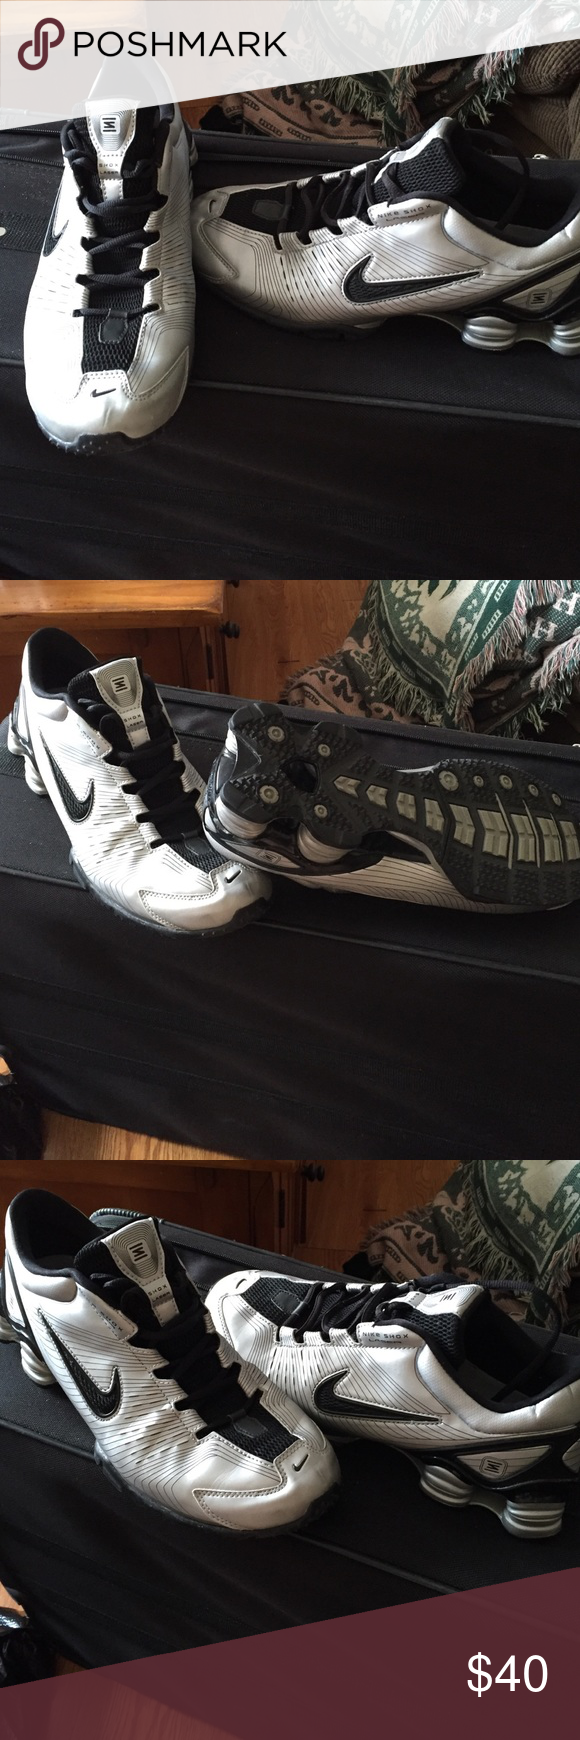 "SIZE 9 1/2 WOMANS ""NIKE SHOX LAZOR"" SNEAKER SILVER ,BLACK COLOR IN GREAT CONDITION ONLY NEEDS NEW INSOLES Nike Shoes Athletic Shoes"